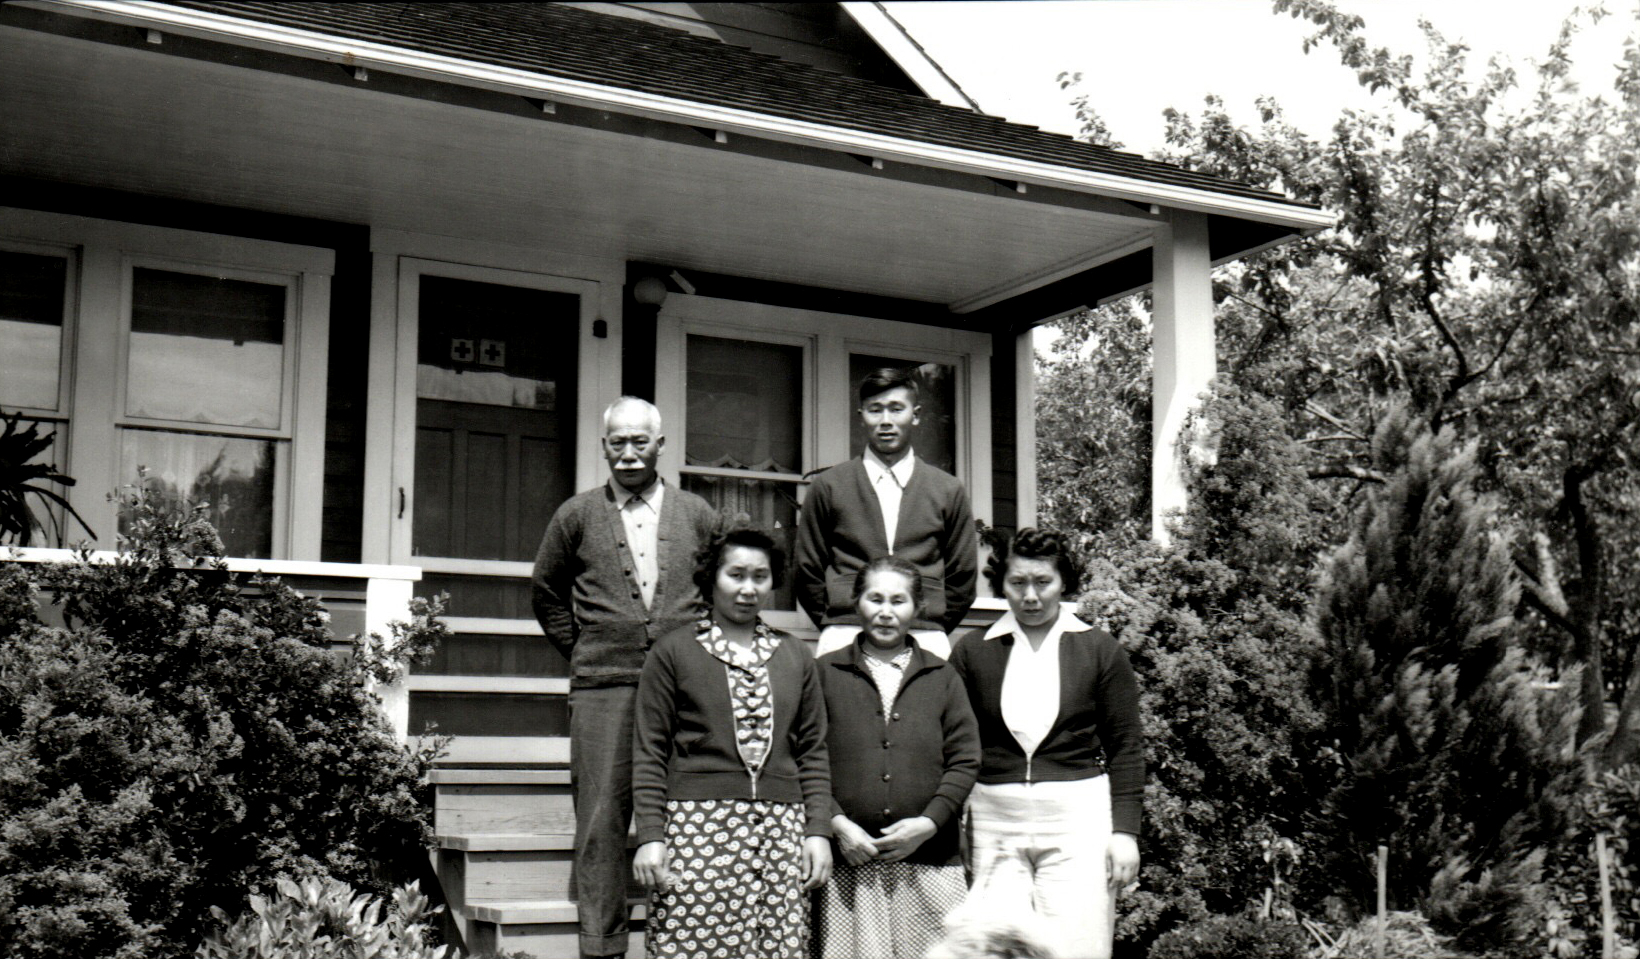 Iseri family, June 3, 1942